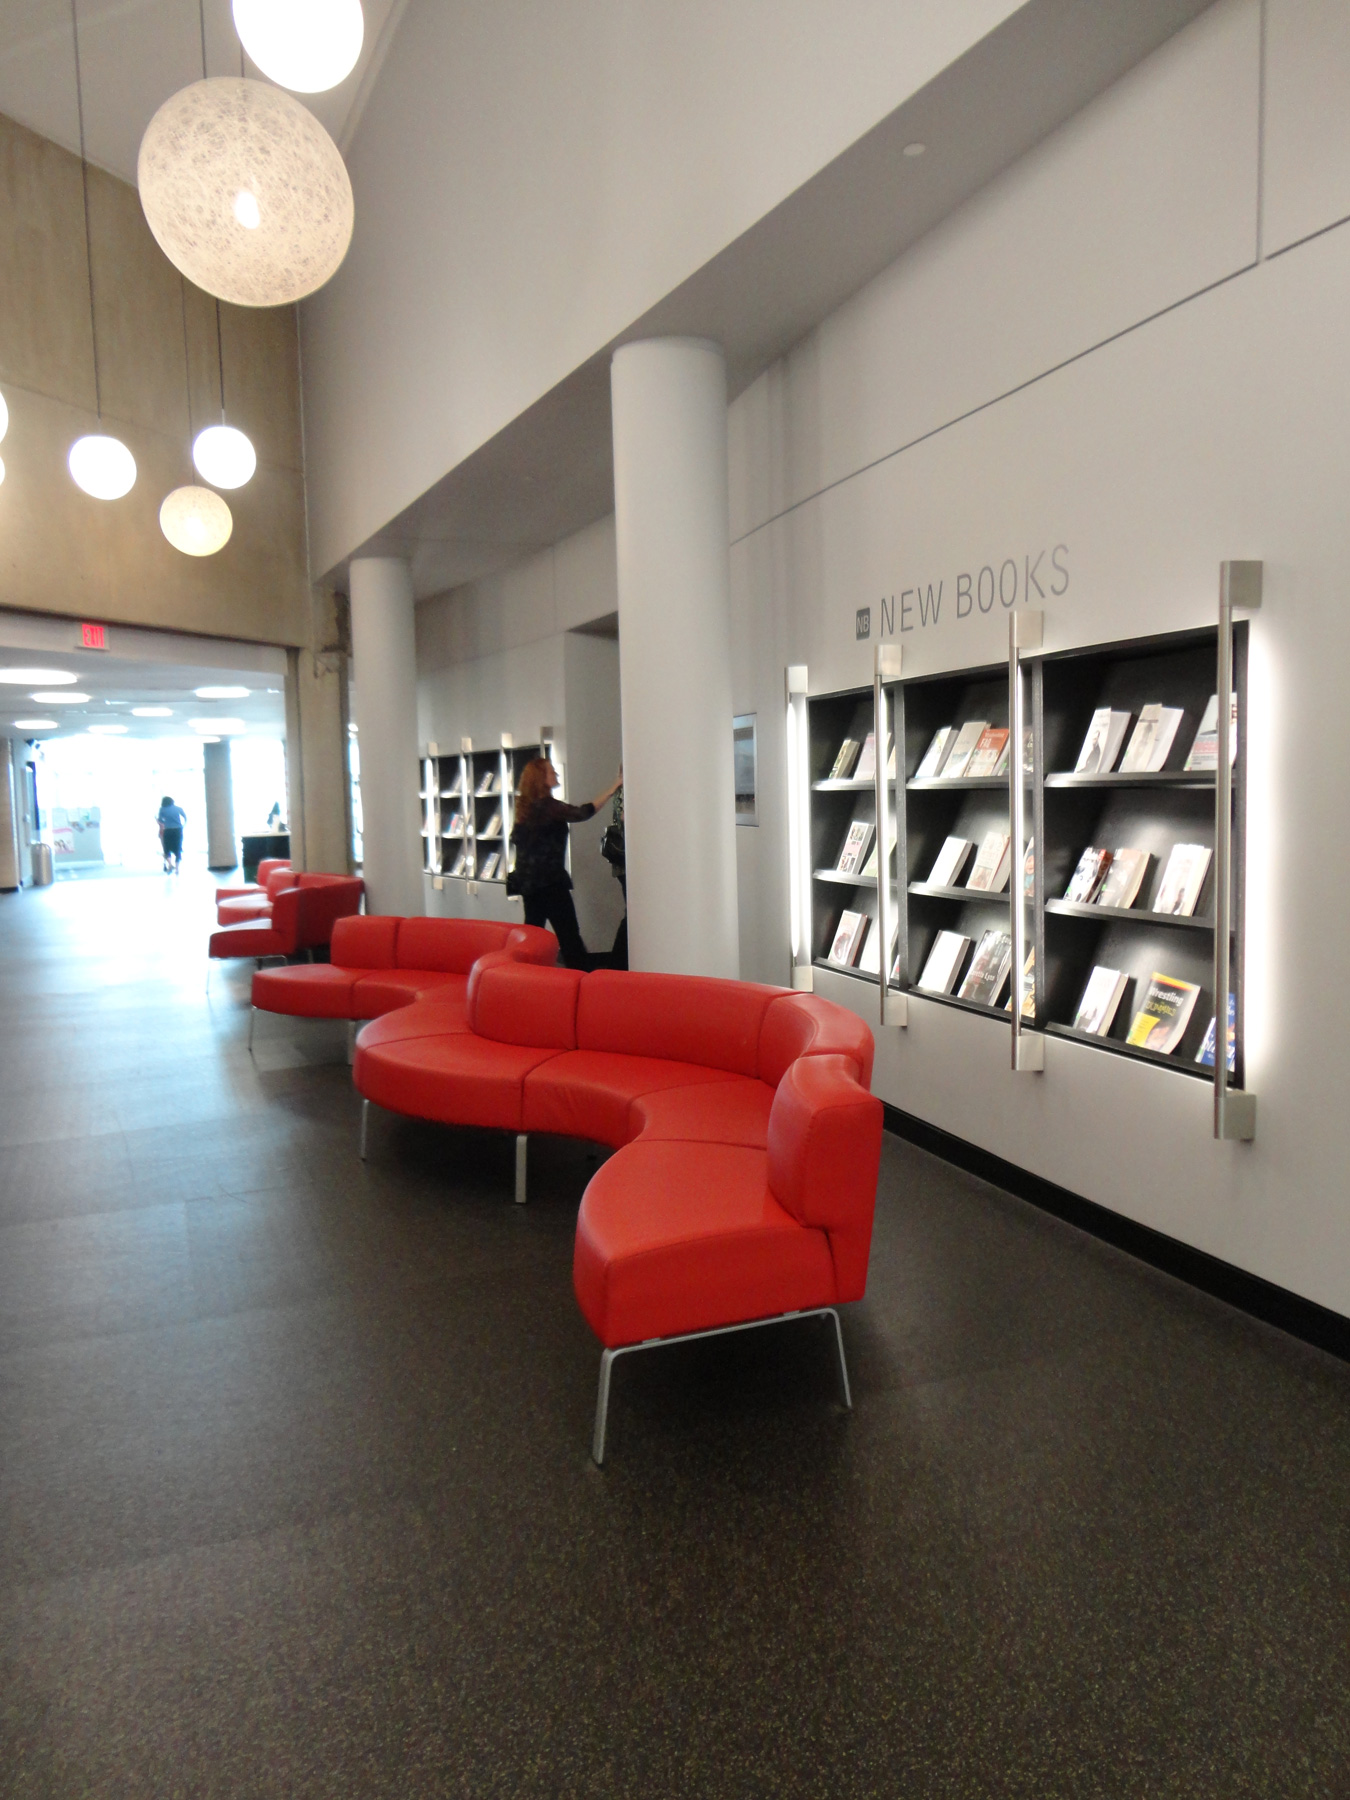 Innovative Library: Poplar Creek Public Library - Ideas & Inspiration from Demco